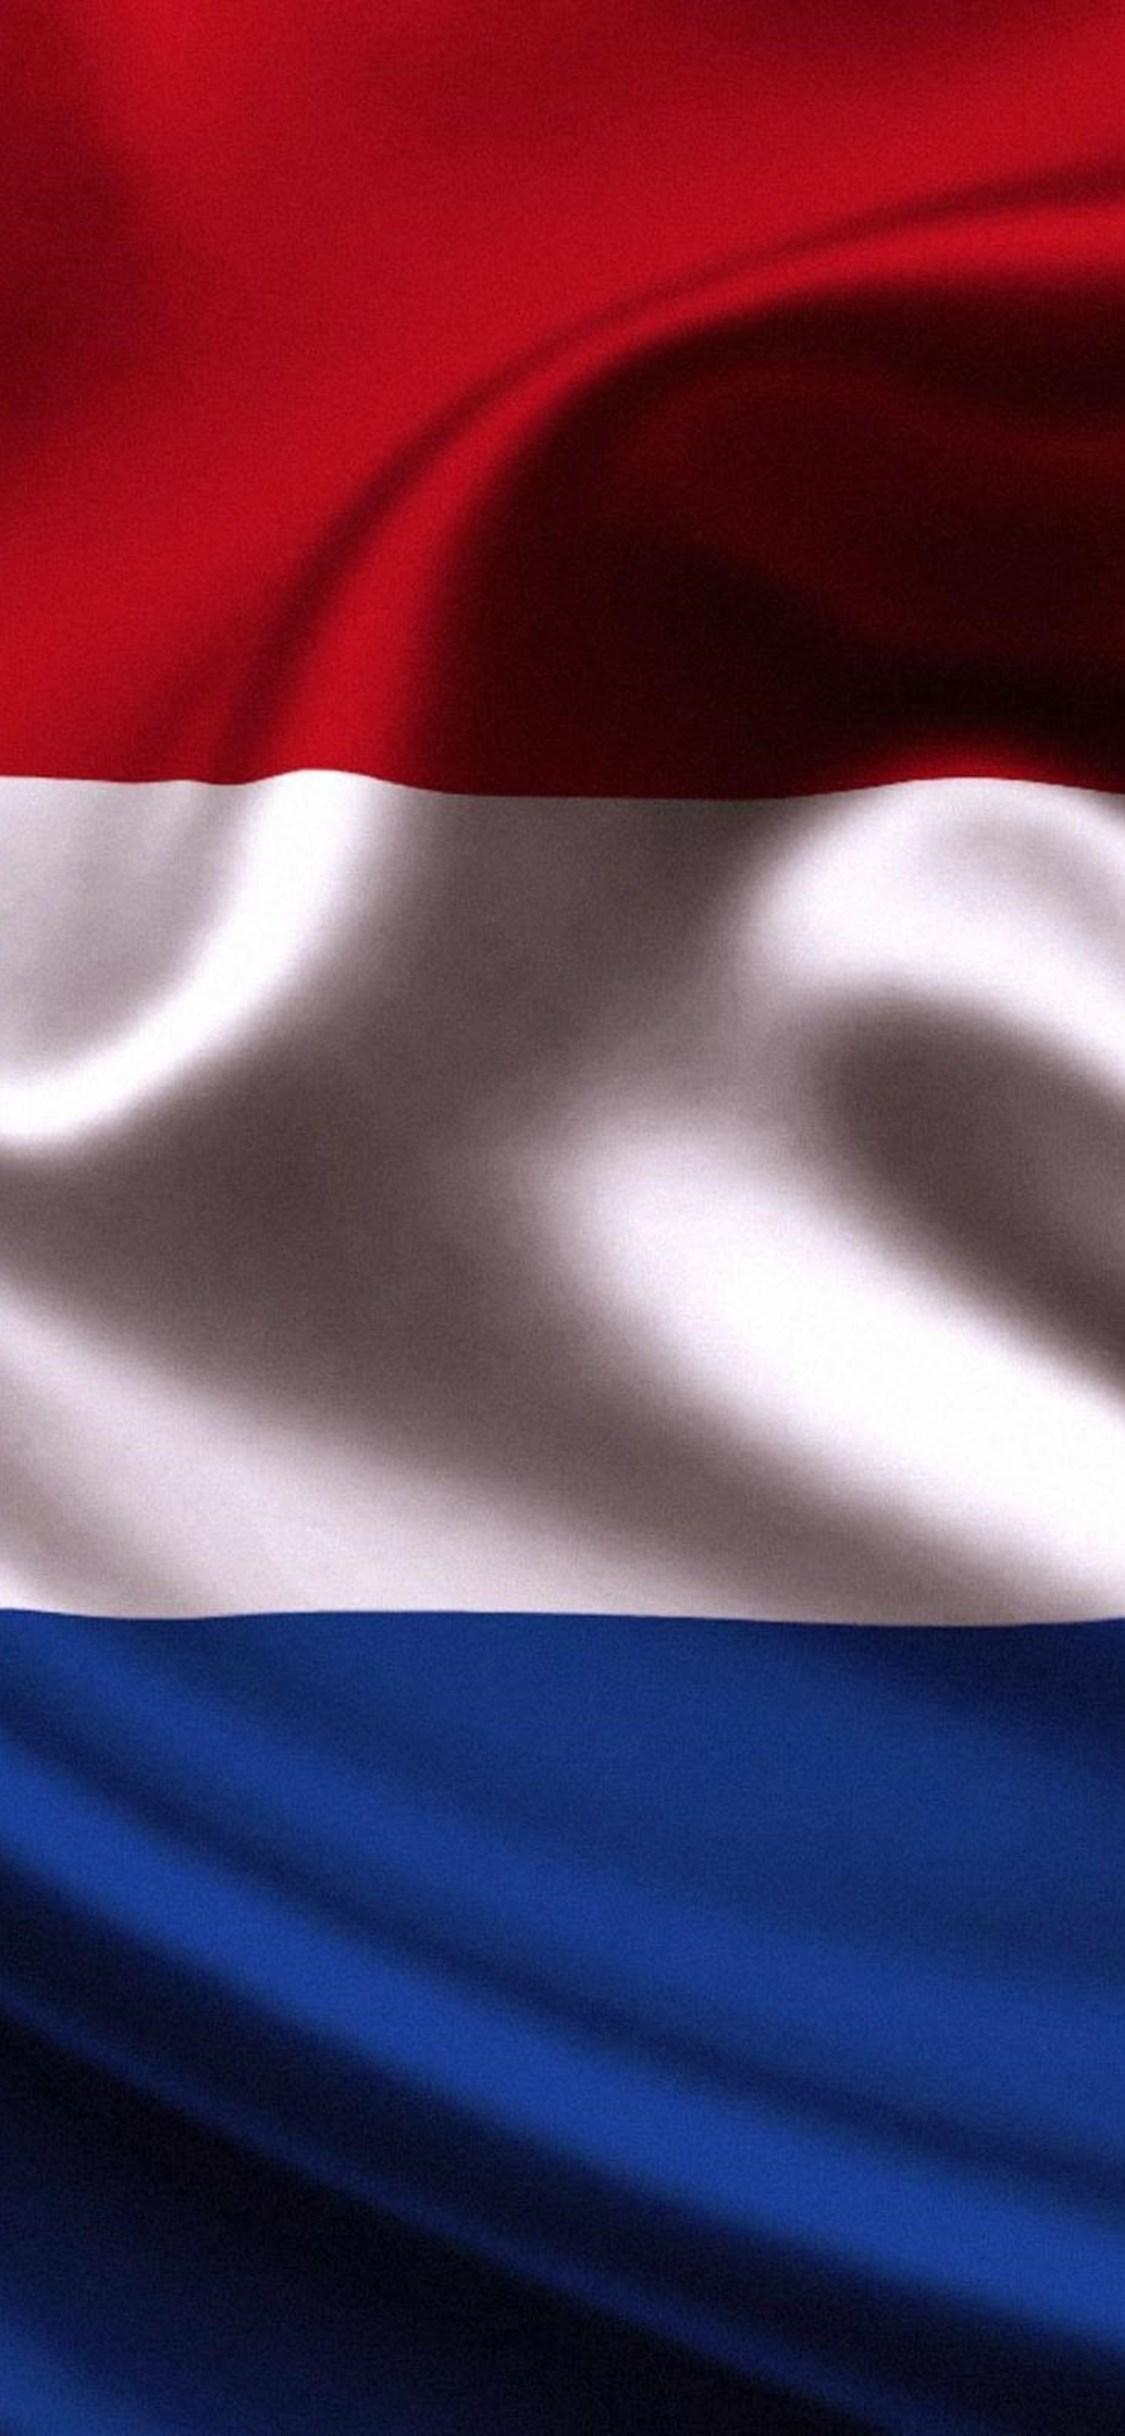 1125x2436 Netherlands Flag Iphone XS,Iphone 10,Iphone X HD 4k